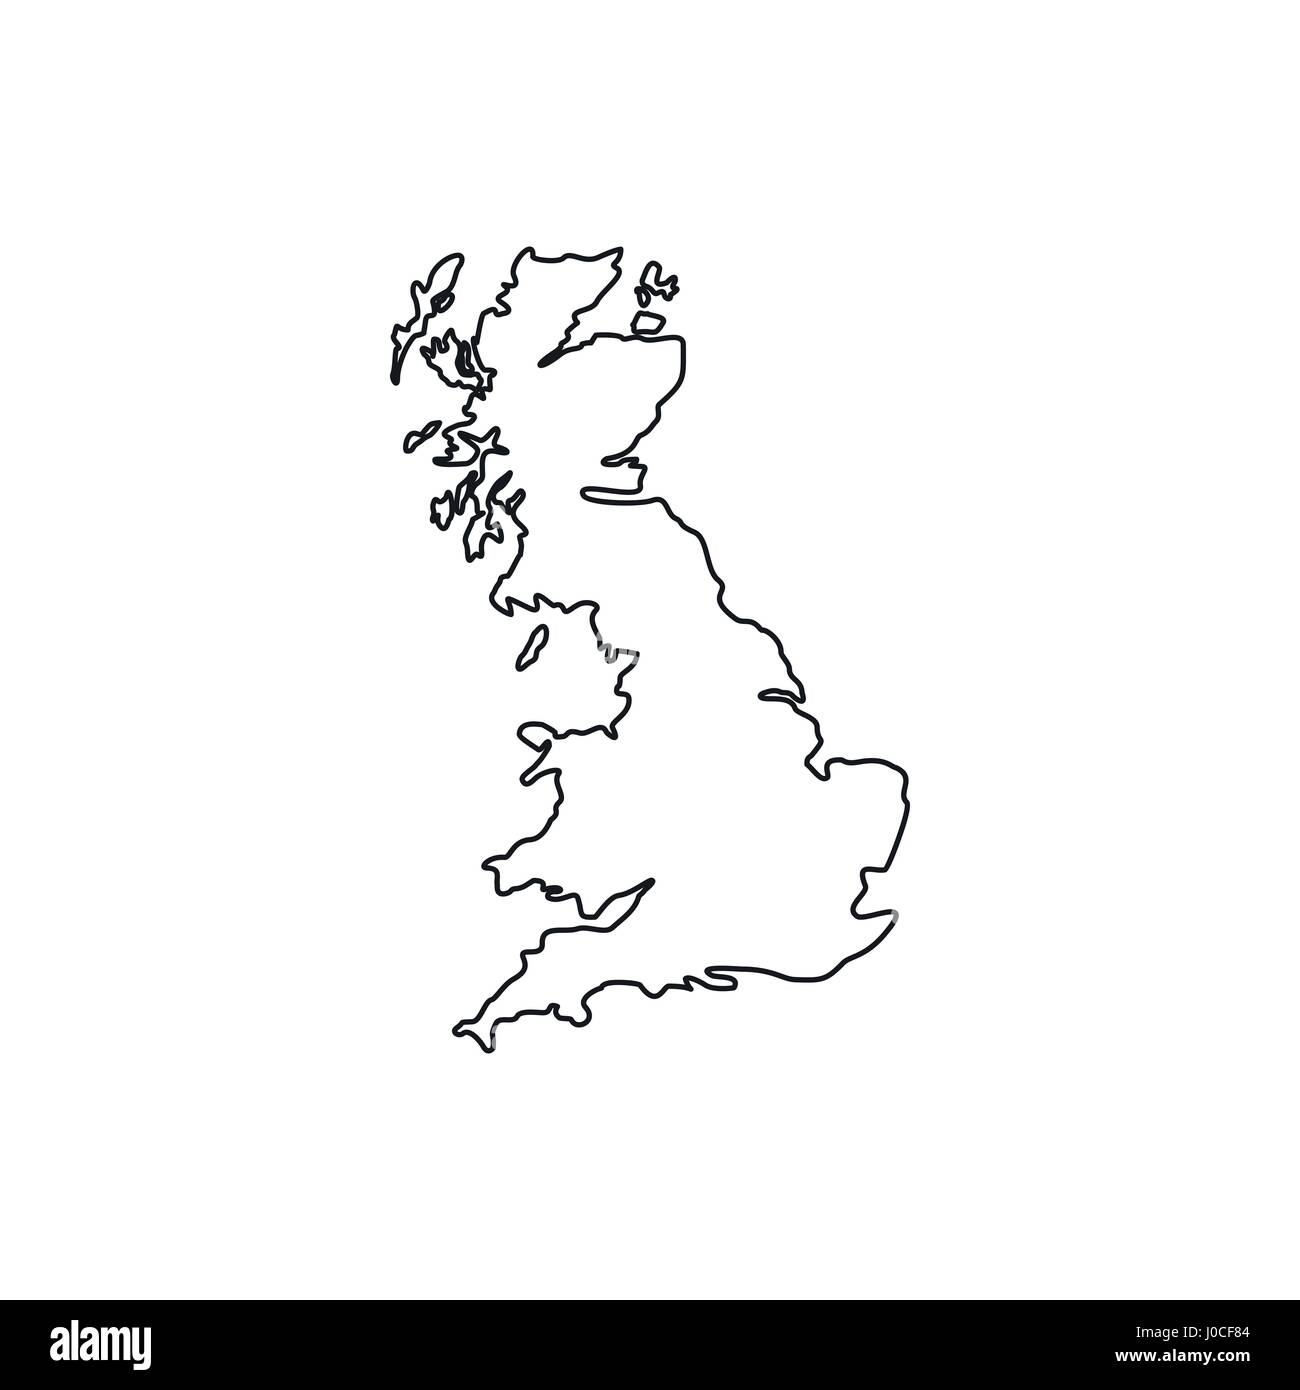 map of great britain icon outline style stock vector art